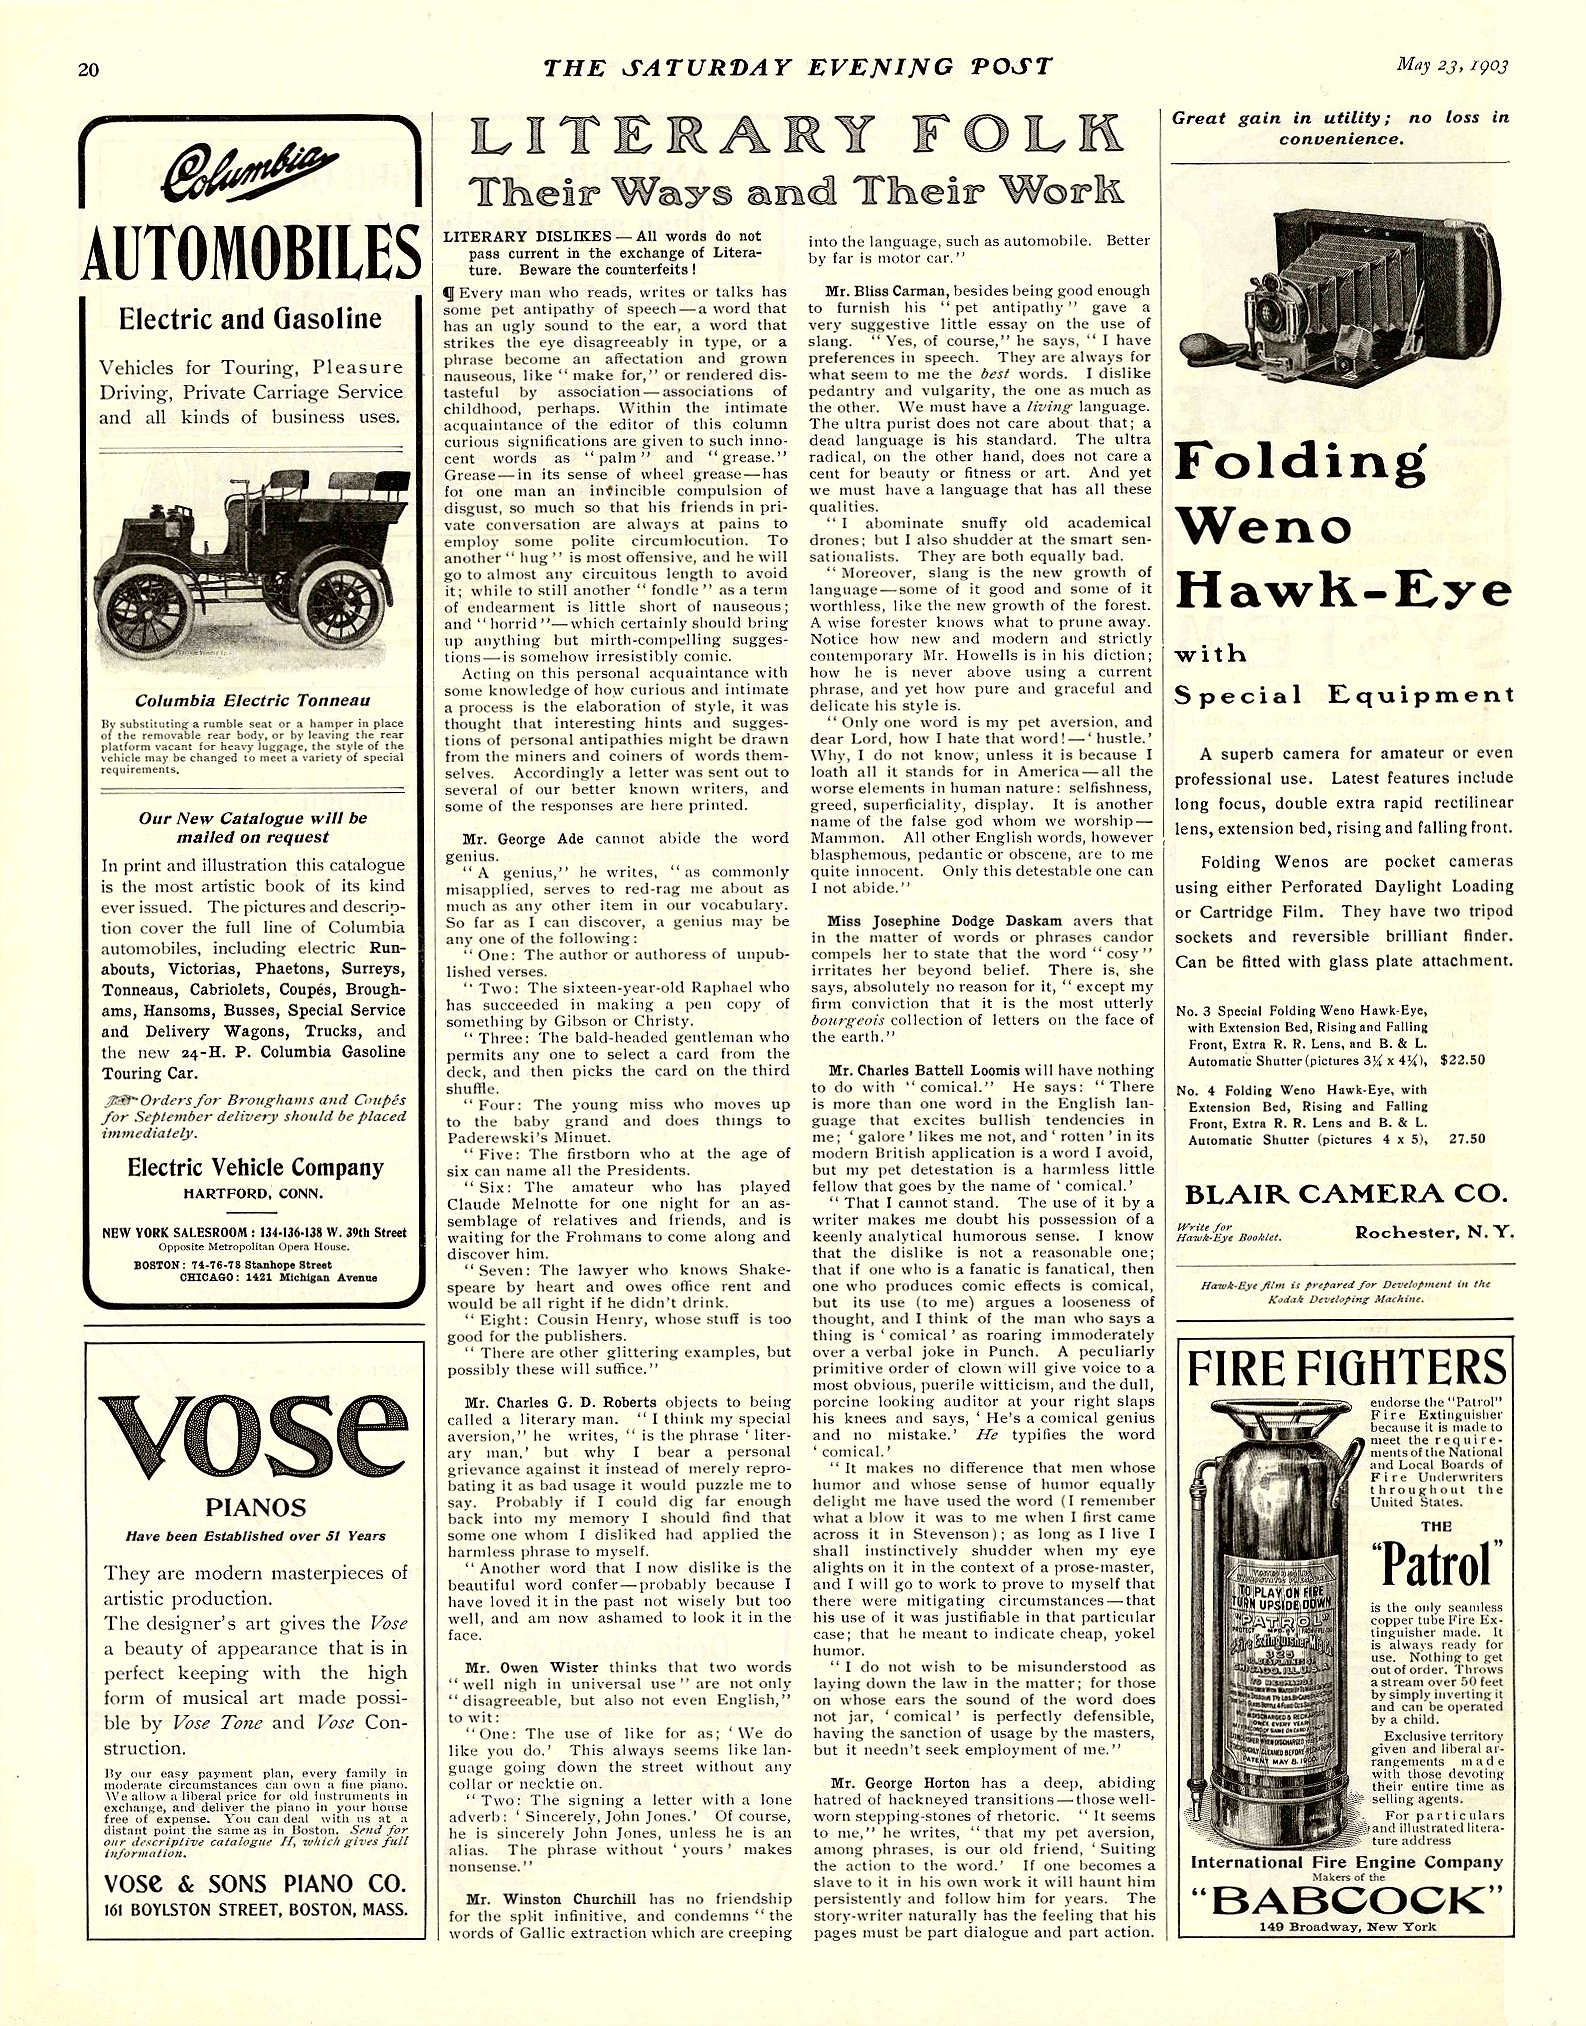 1903 5 23 COLUMBIA Columbia AUTOMOBILES Electric and Gasoline THE SATURDAY EVENING POST May 23, 1903 10.75″x13.75″ page 20